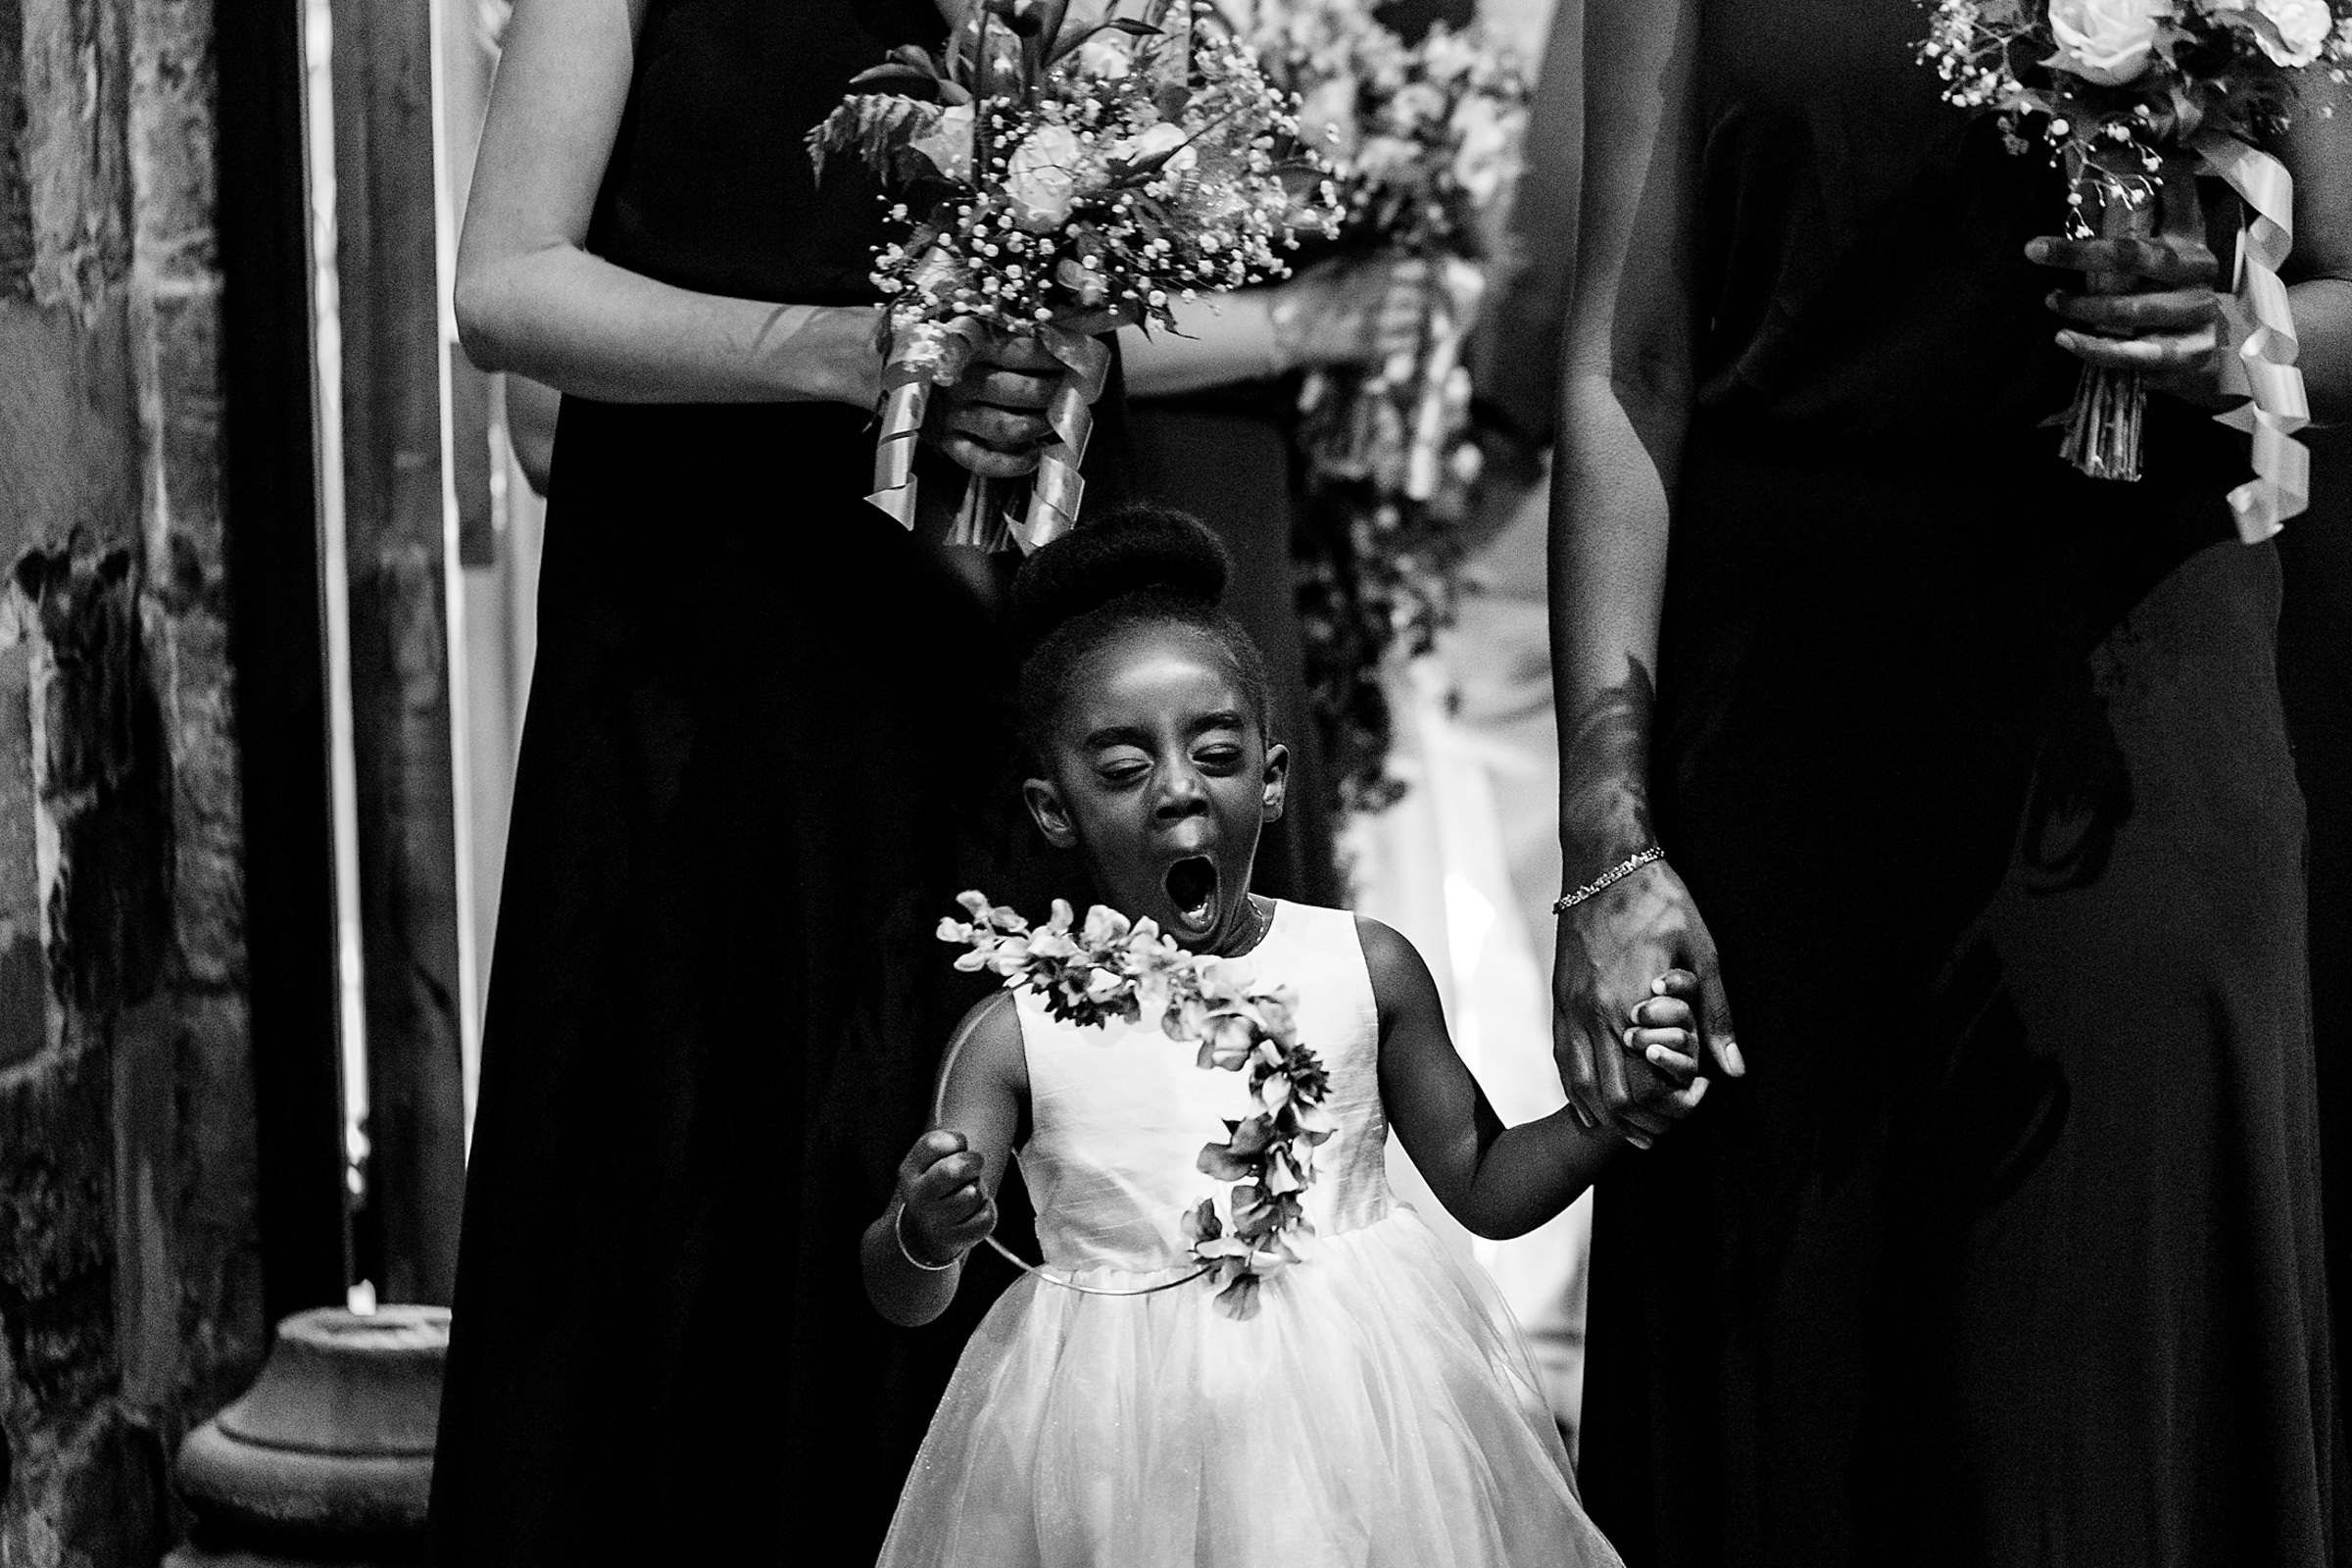 Flower girl yawning - photo by Emma + Rich